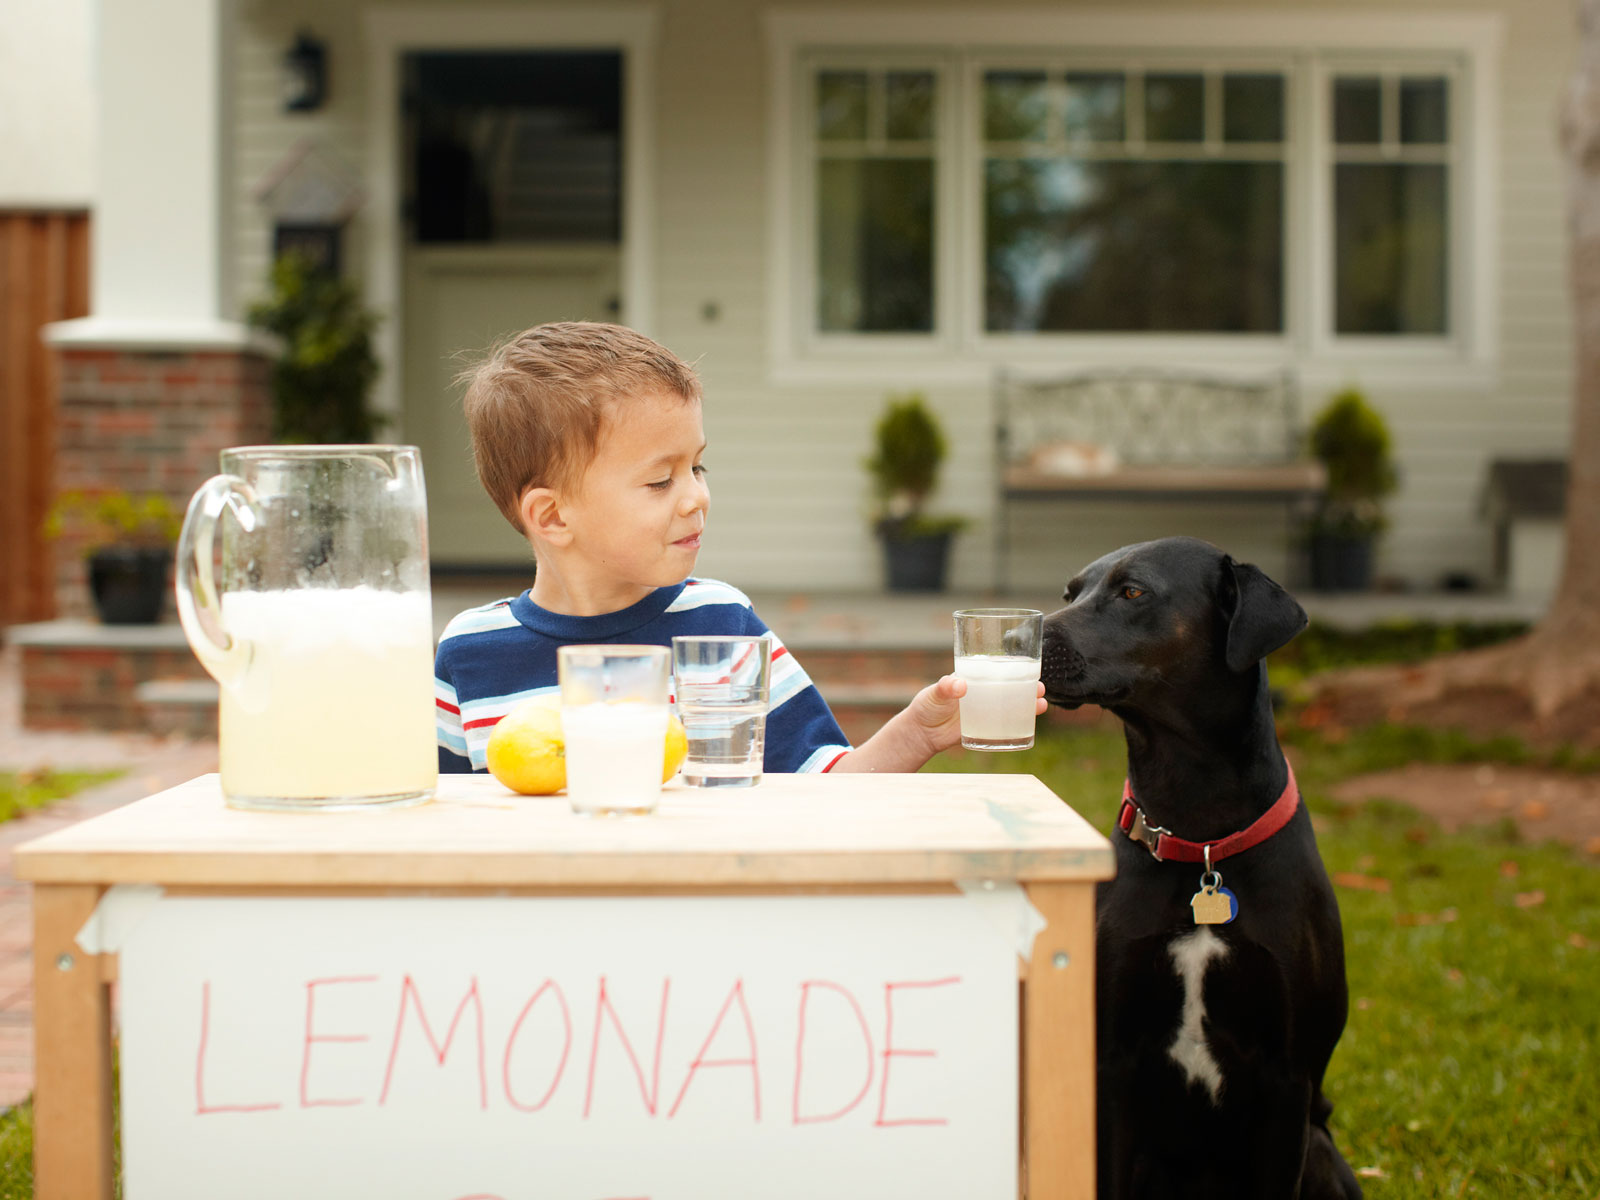 country-time-lemonade-fines-FT-BLOG0618.jpg